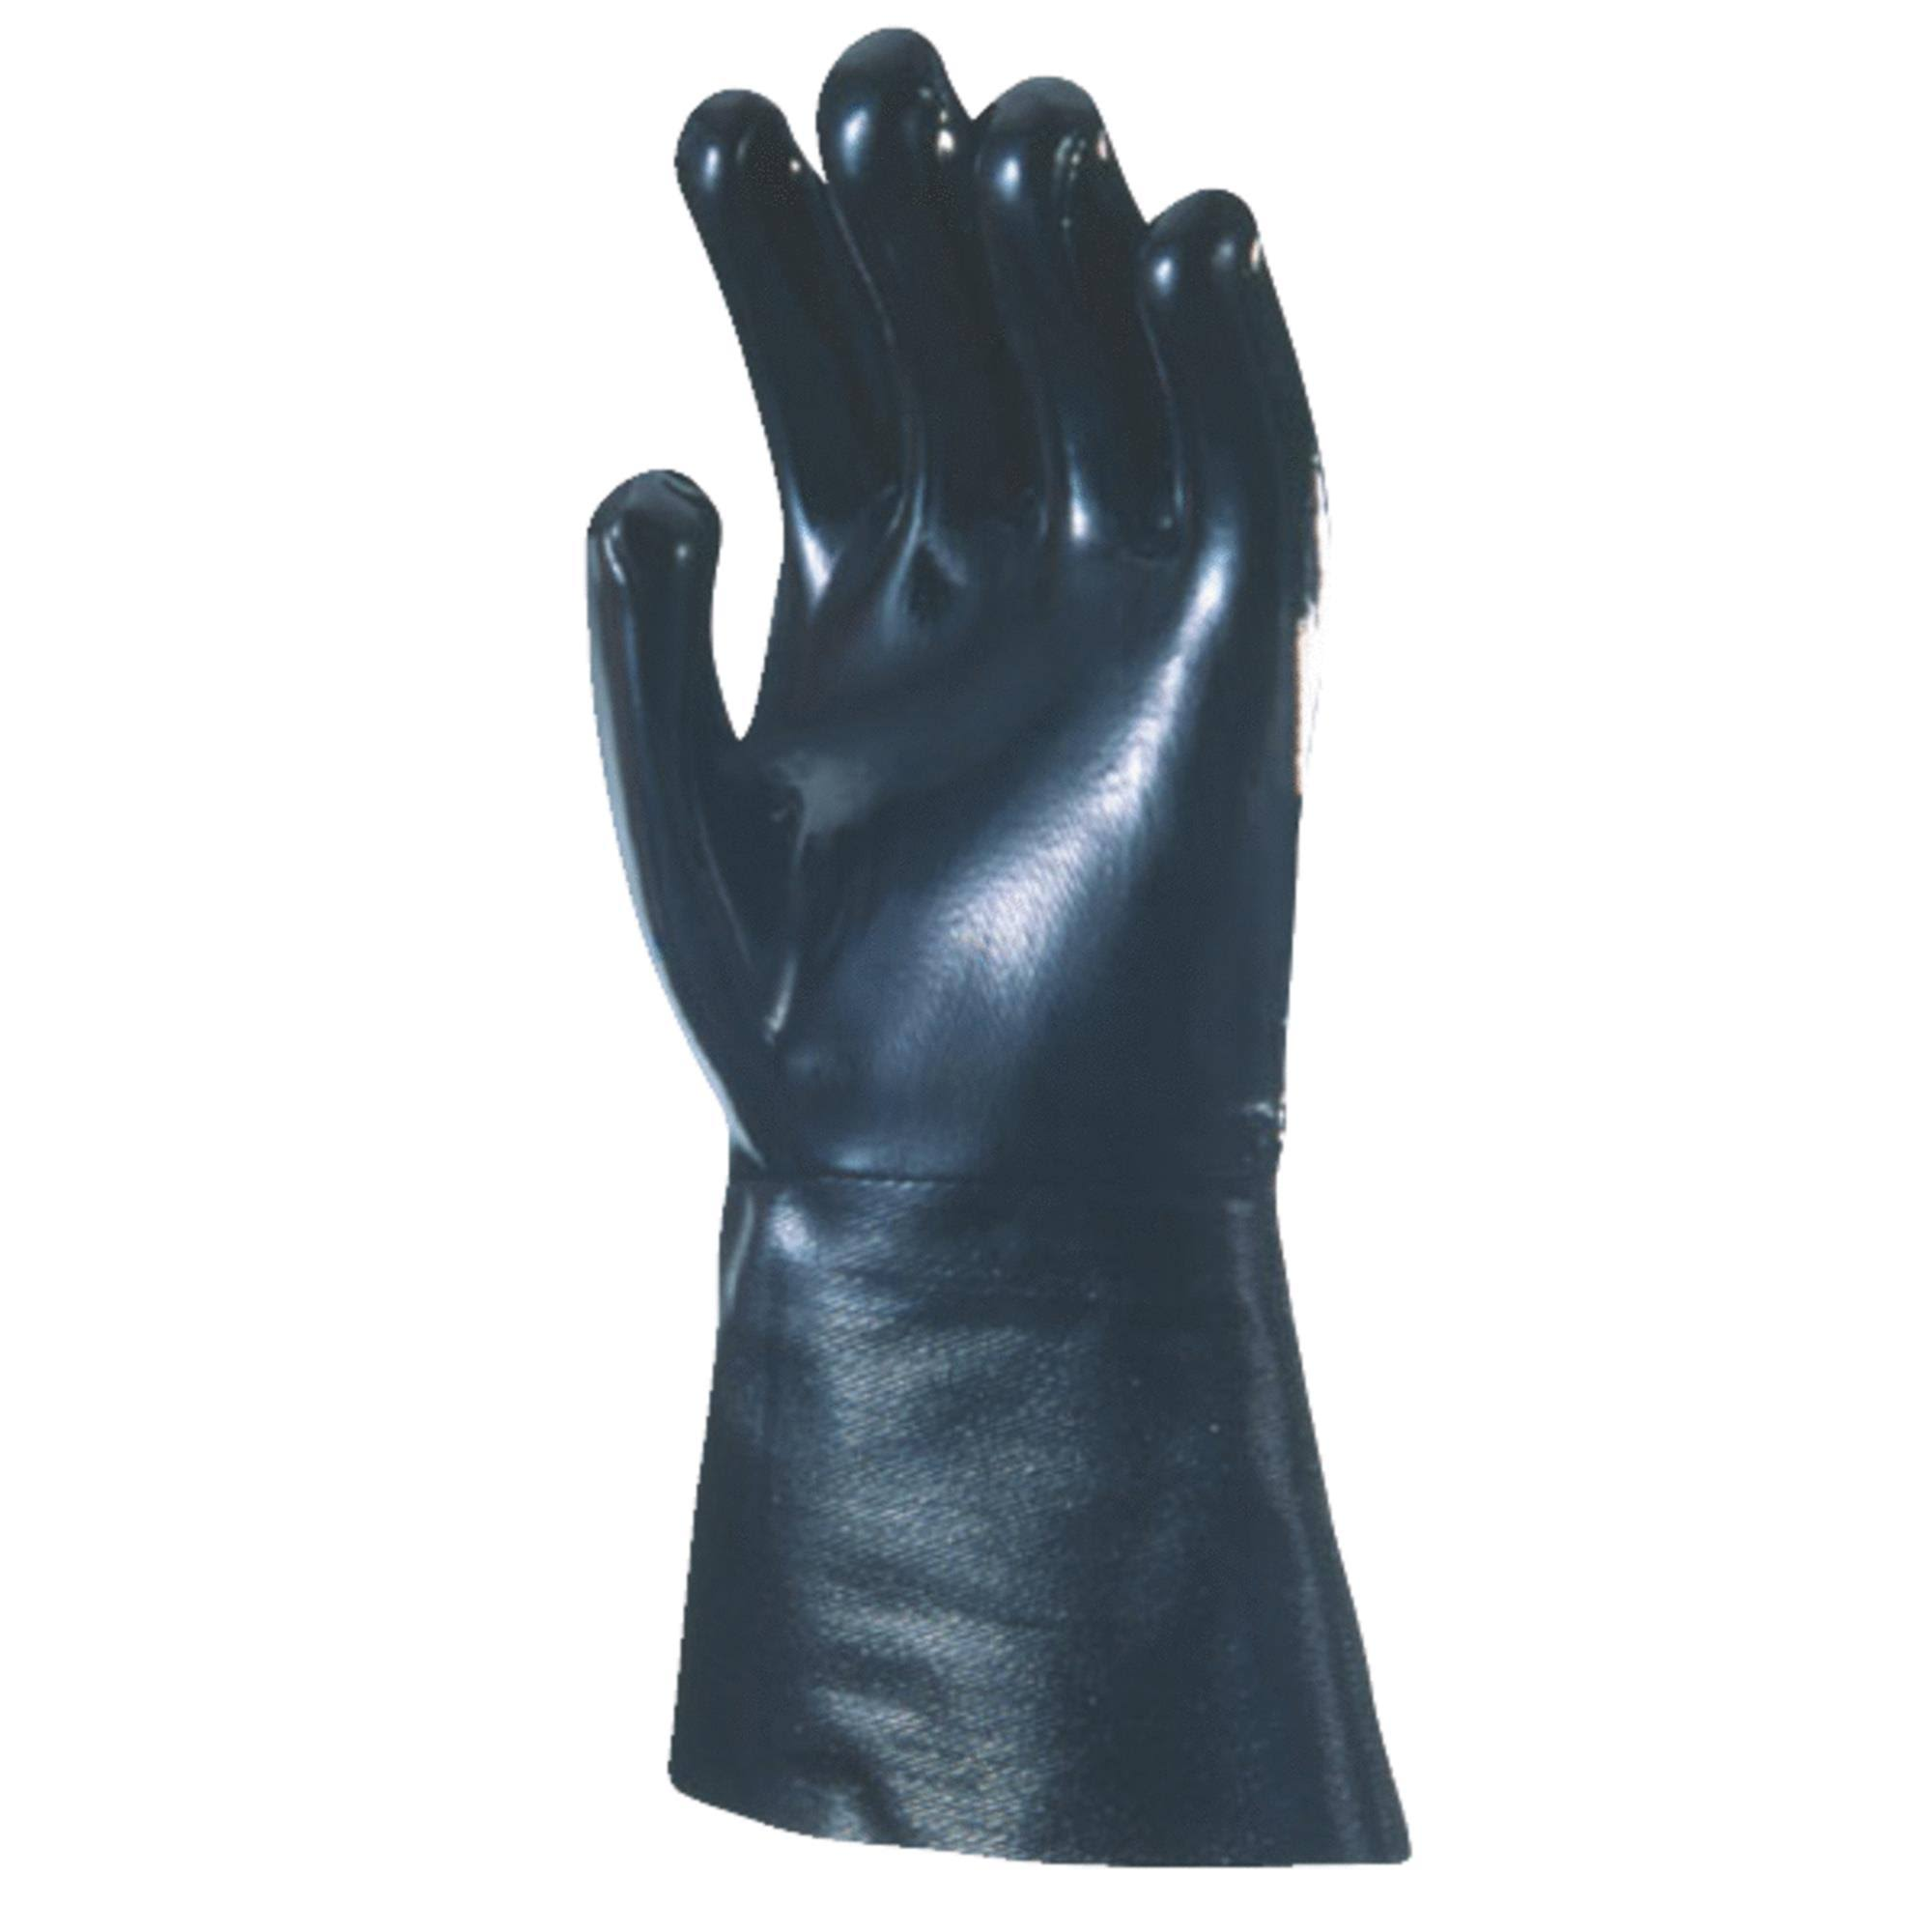 "Wells Lamont Pro Chemical Neoprene Gloves - 1 Size Fits All, 12"", Black"